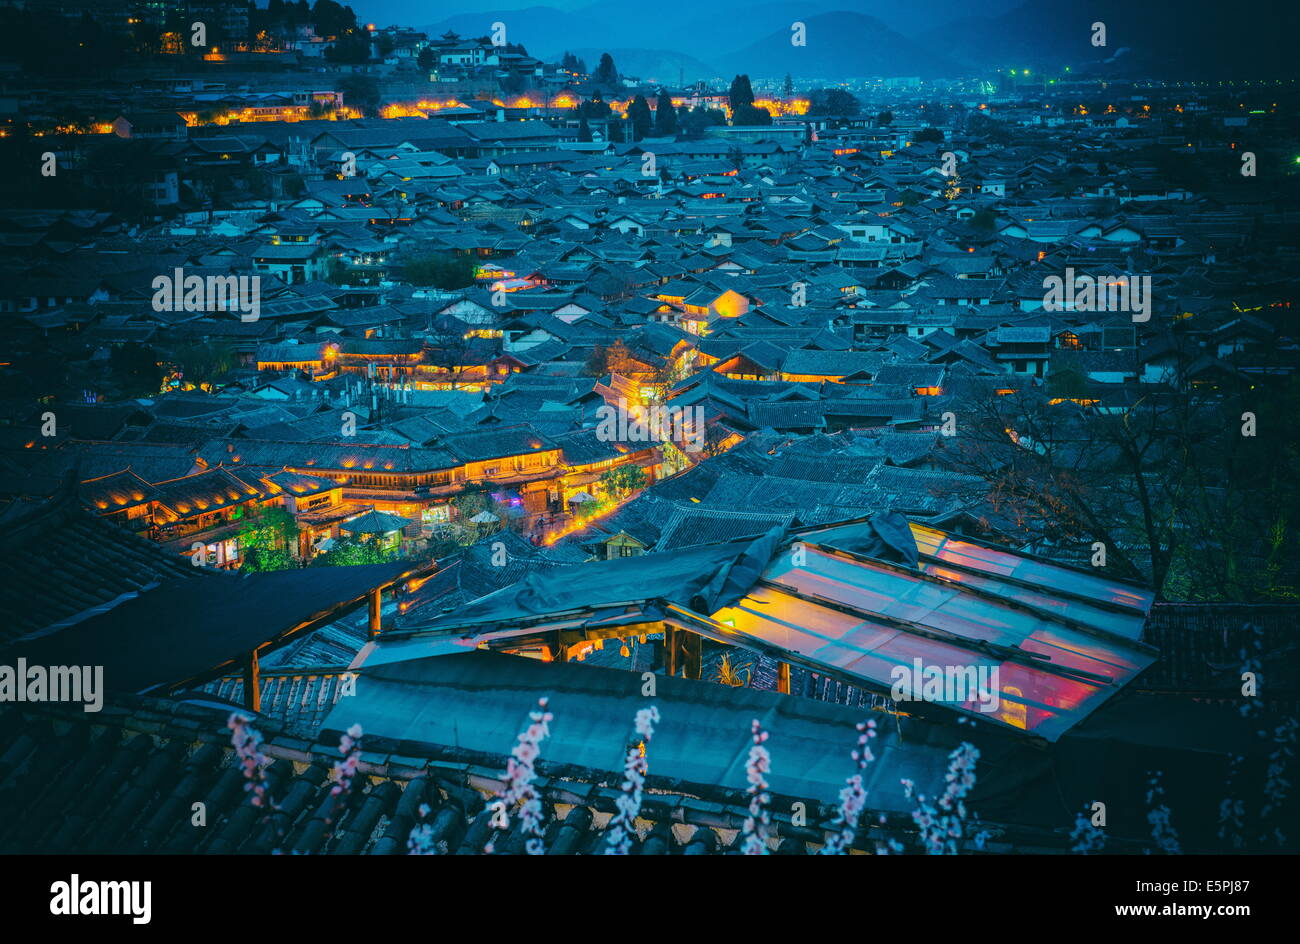 Blue hour shot over roofs of Lijiang Old Town, UNESCO World Heritage Site, Lijiang, Yunnan, China, Asia - Stock Image